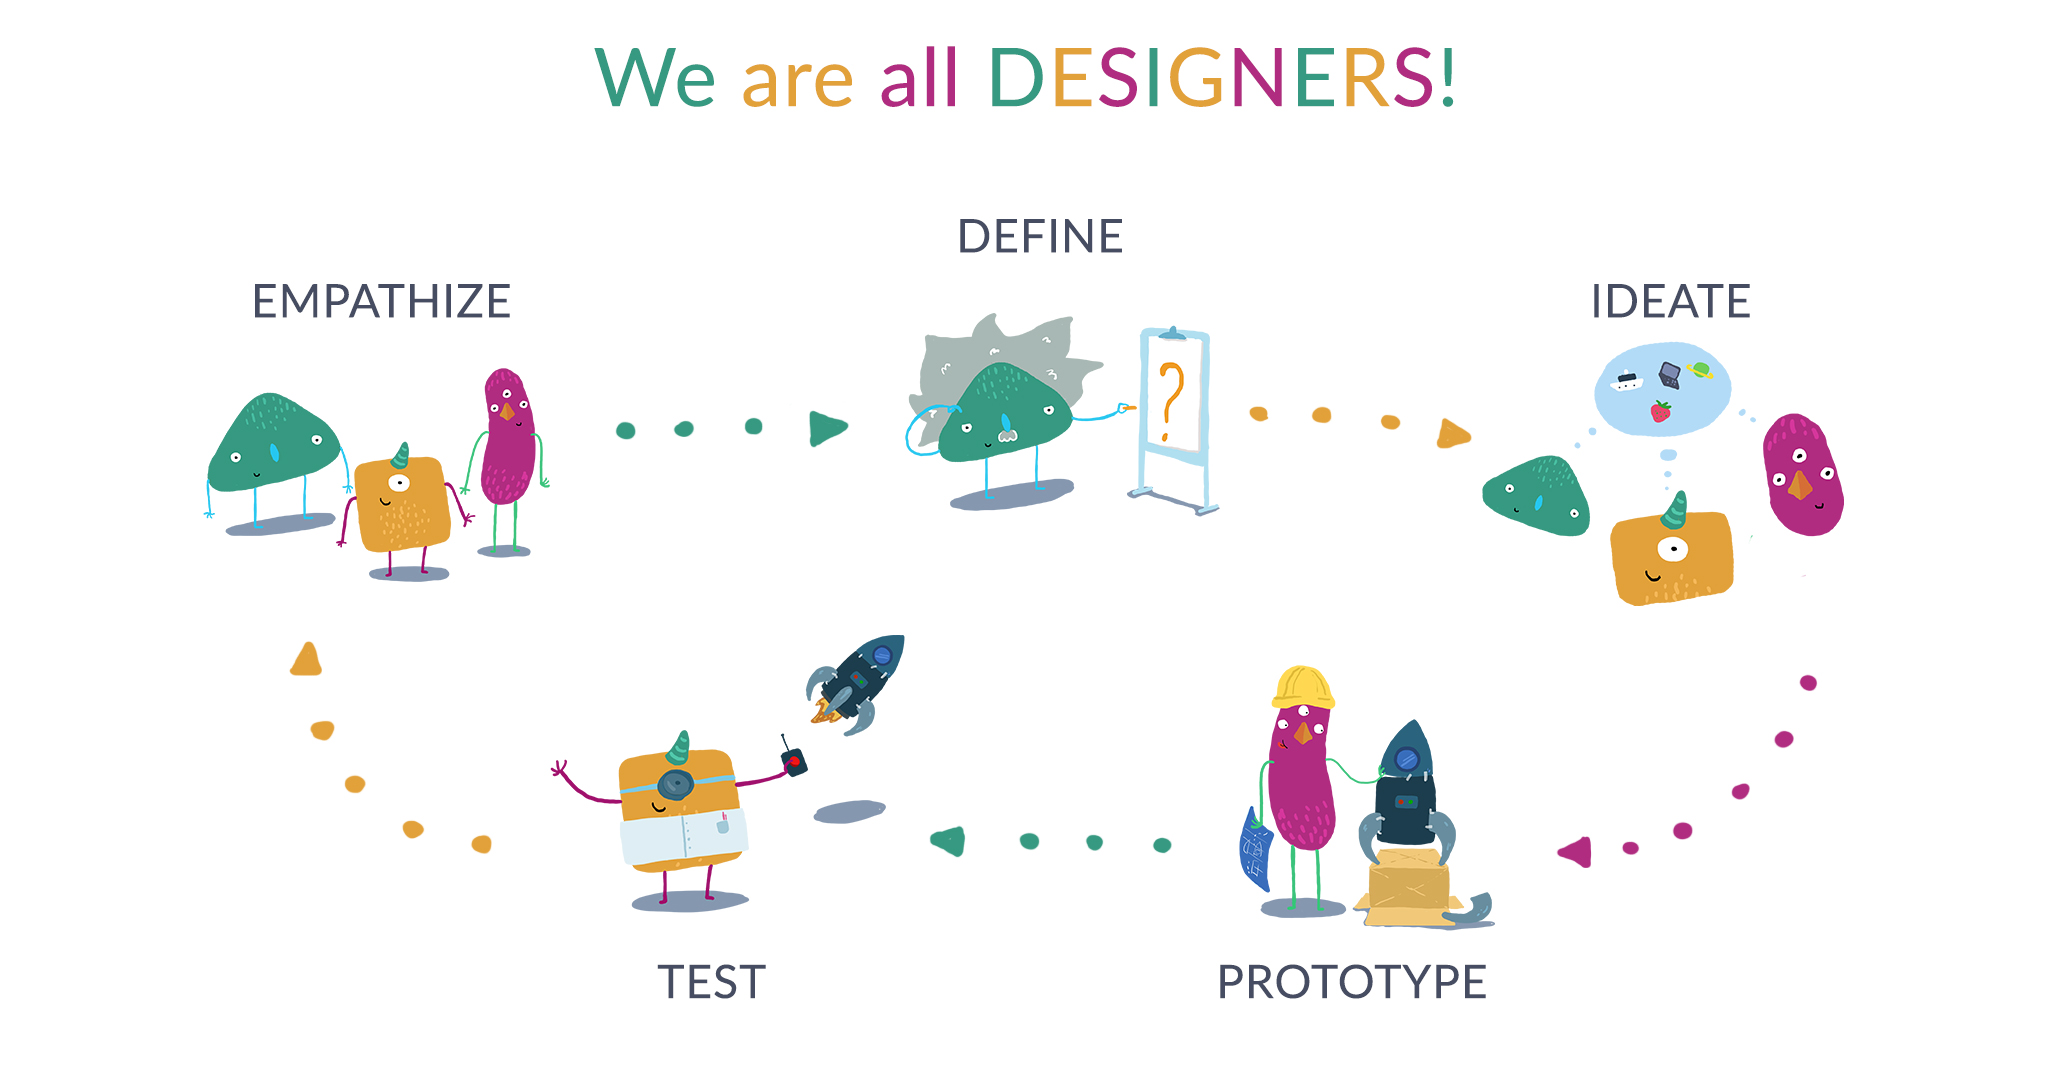 Forrás: https://explaineverything.com/wp-content/uploads/2016/07/we-are-all-designers-2048.jpg